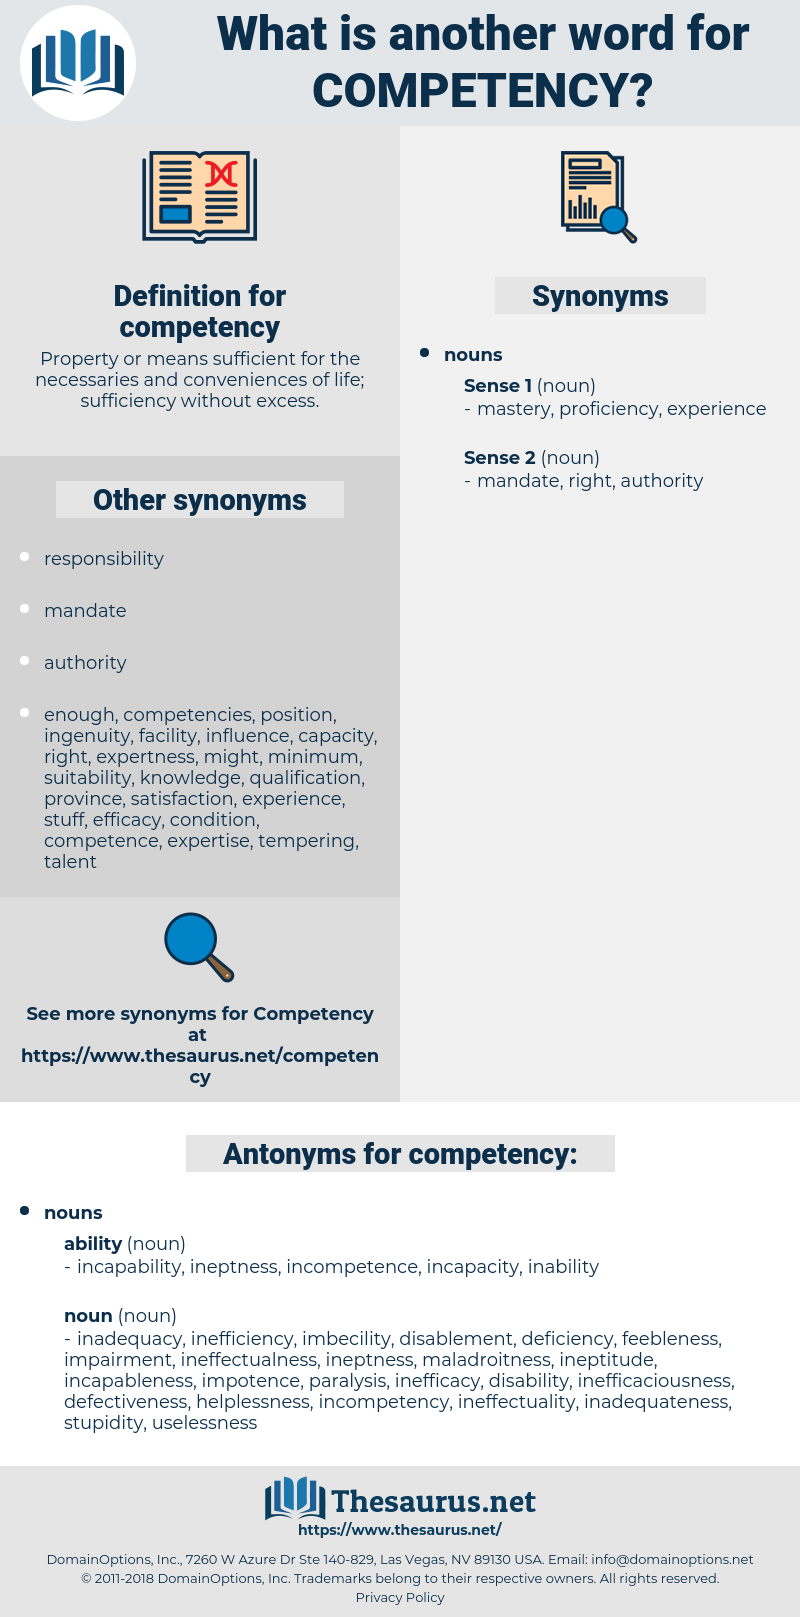 competency, synonym competency, another word for competency, words like competency, thesaurus competency